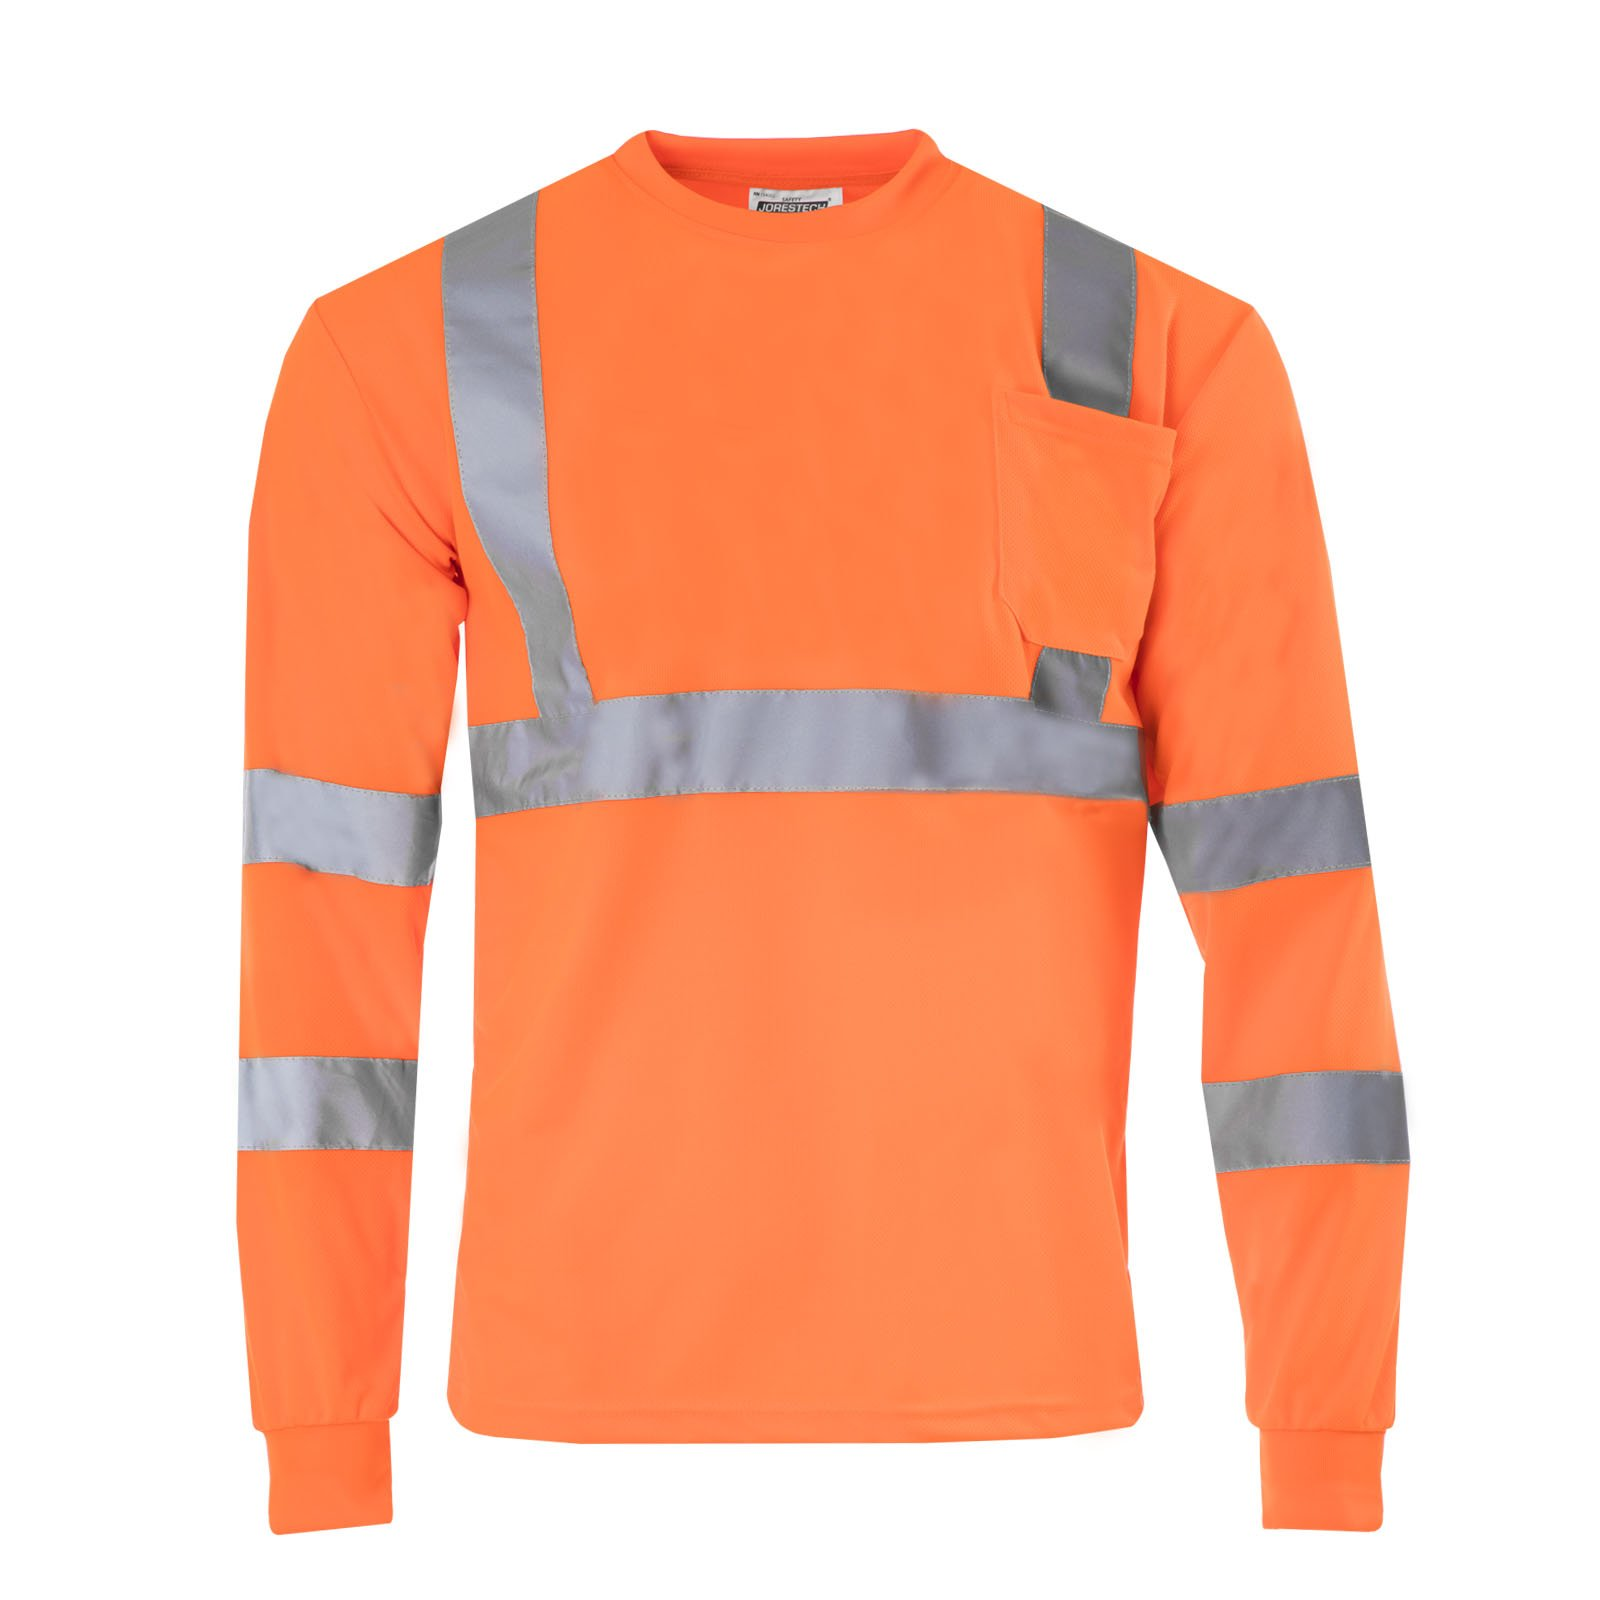 JORESTECH Safety T Shirt Reflective High Visibility Long Sleeve Orange ANSI Class 3 Level 2 Type R TS-08 (L)